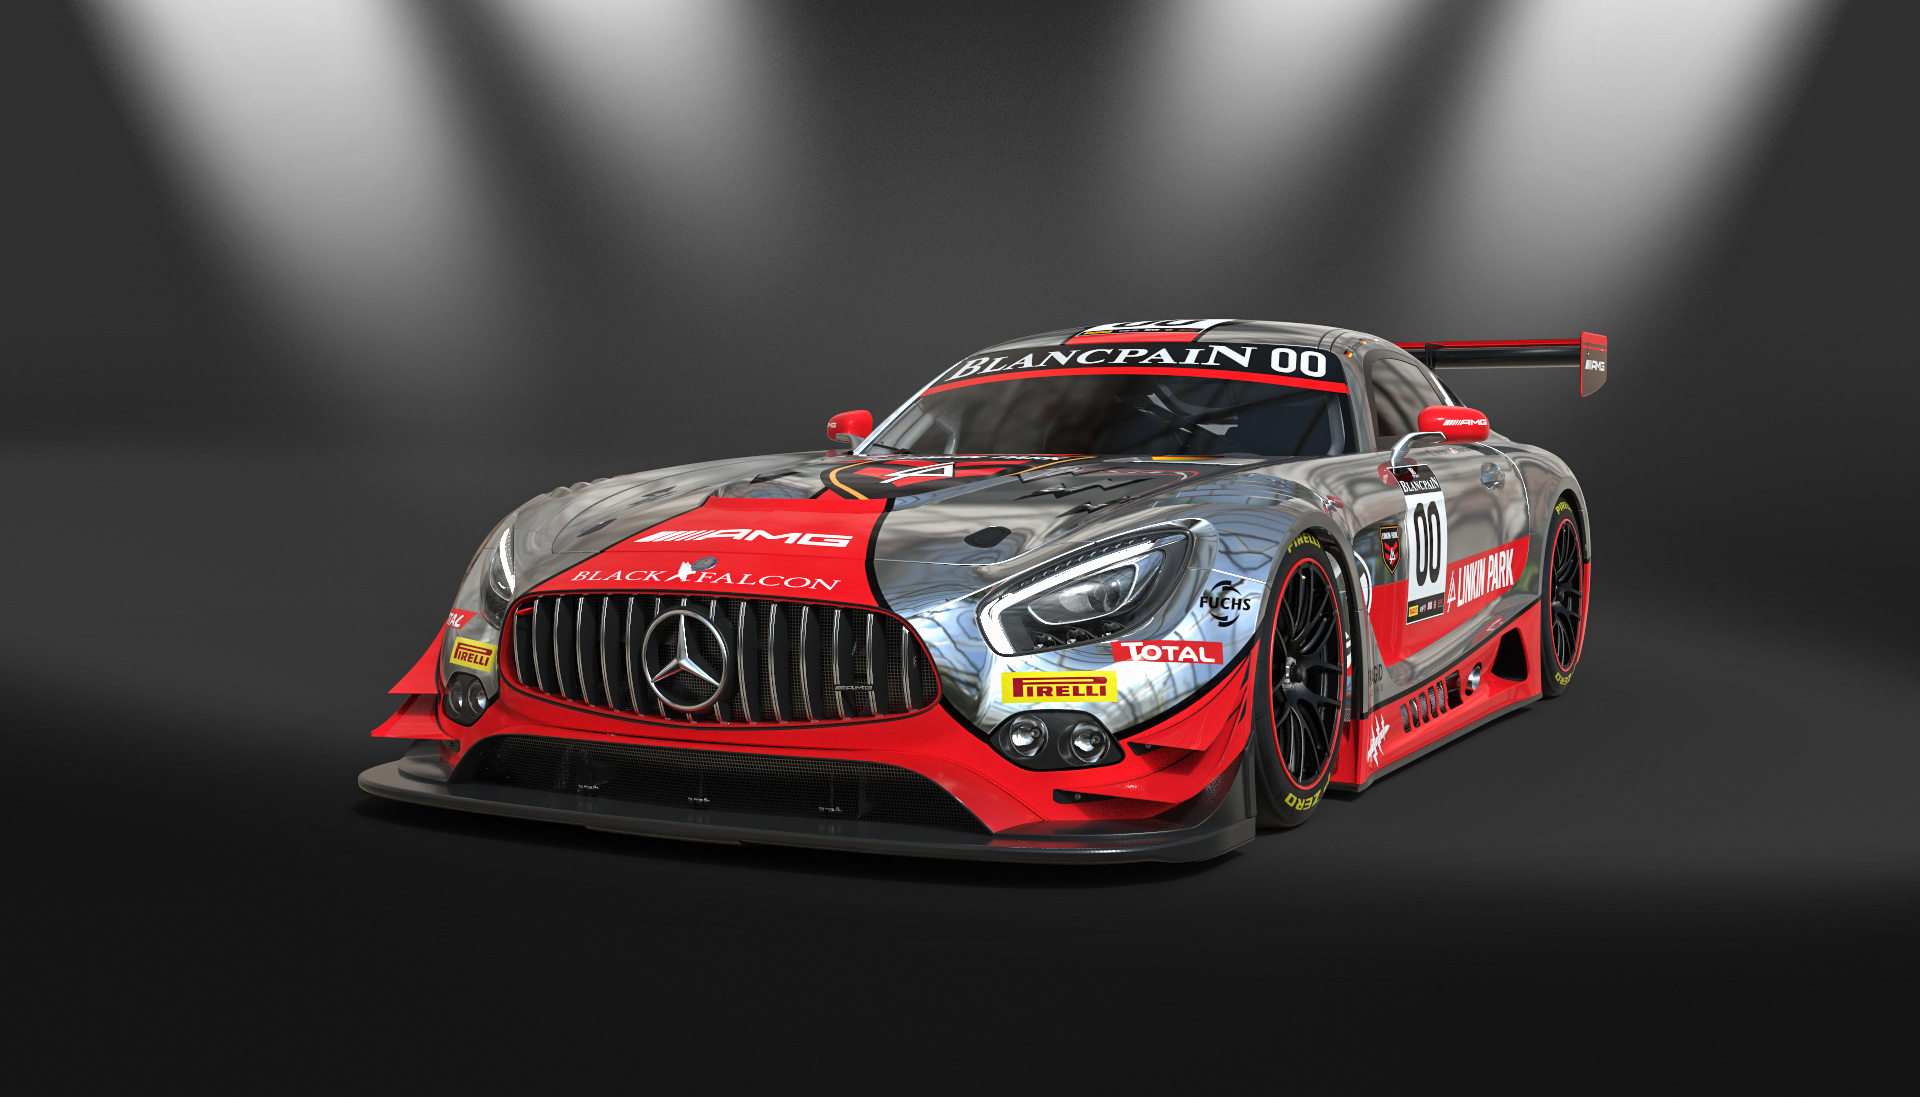 Mercedes AMG GT3 - design by Linkin Park - 2016 - front